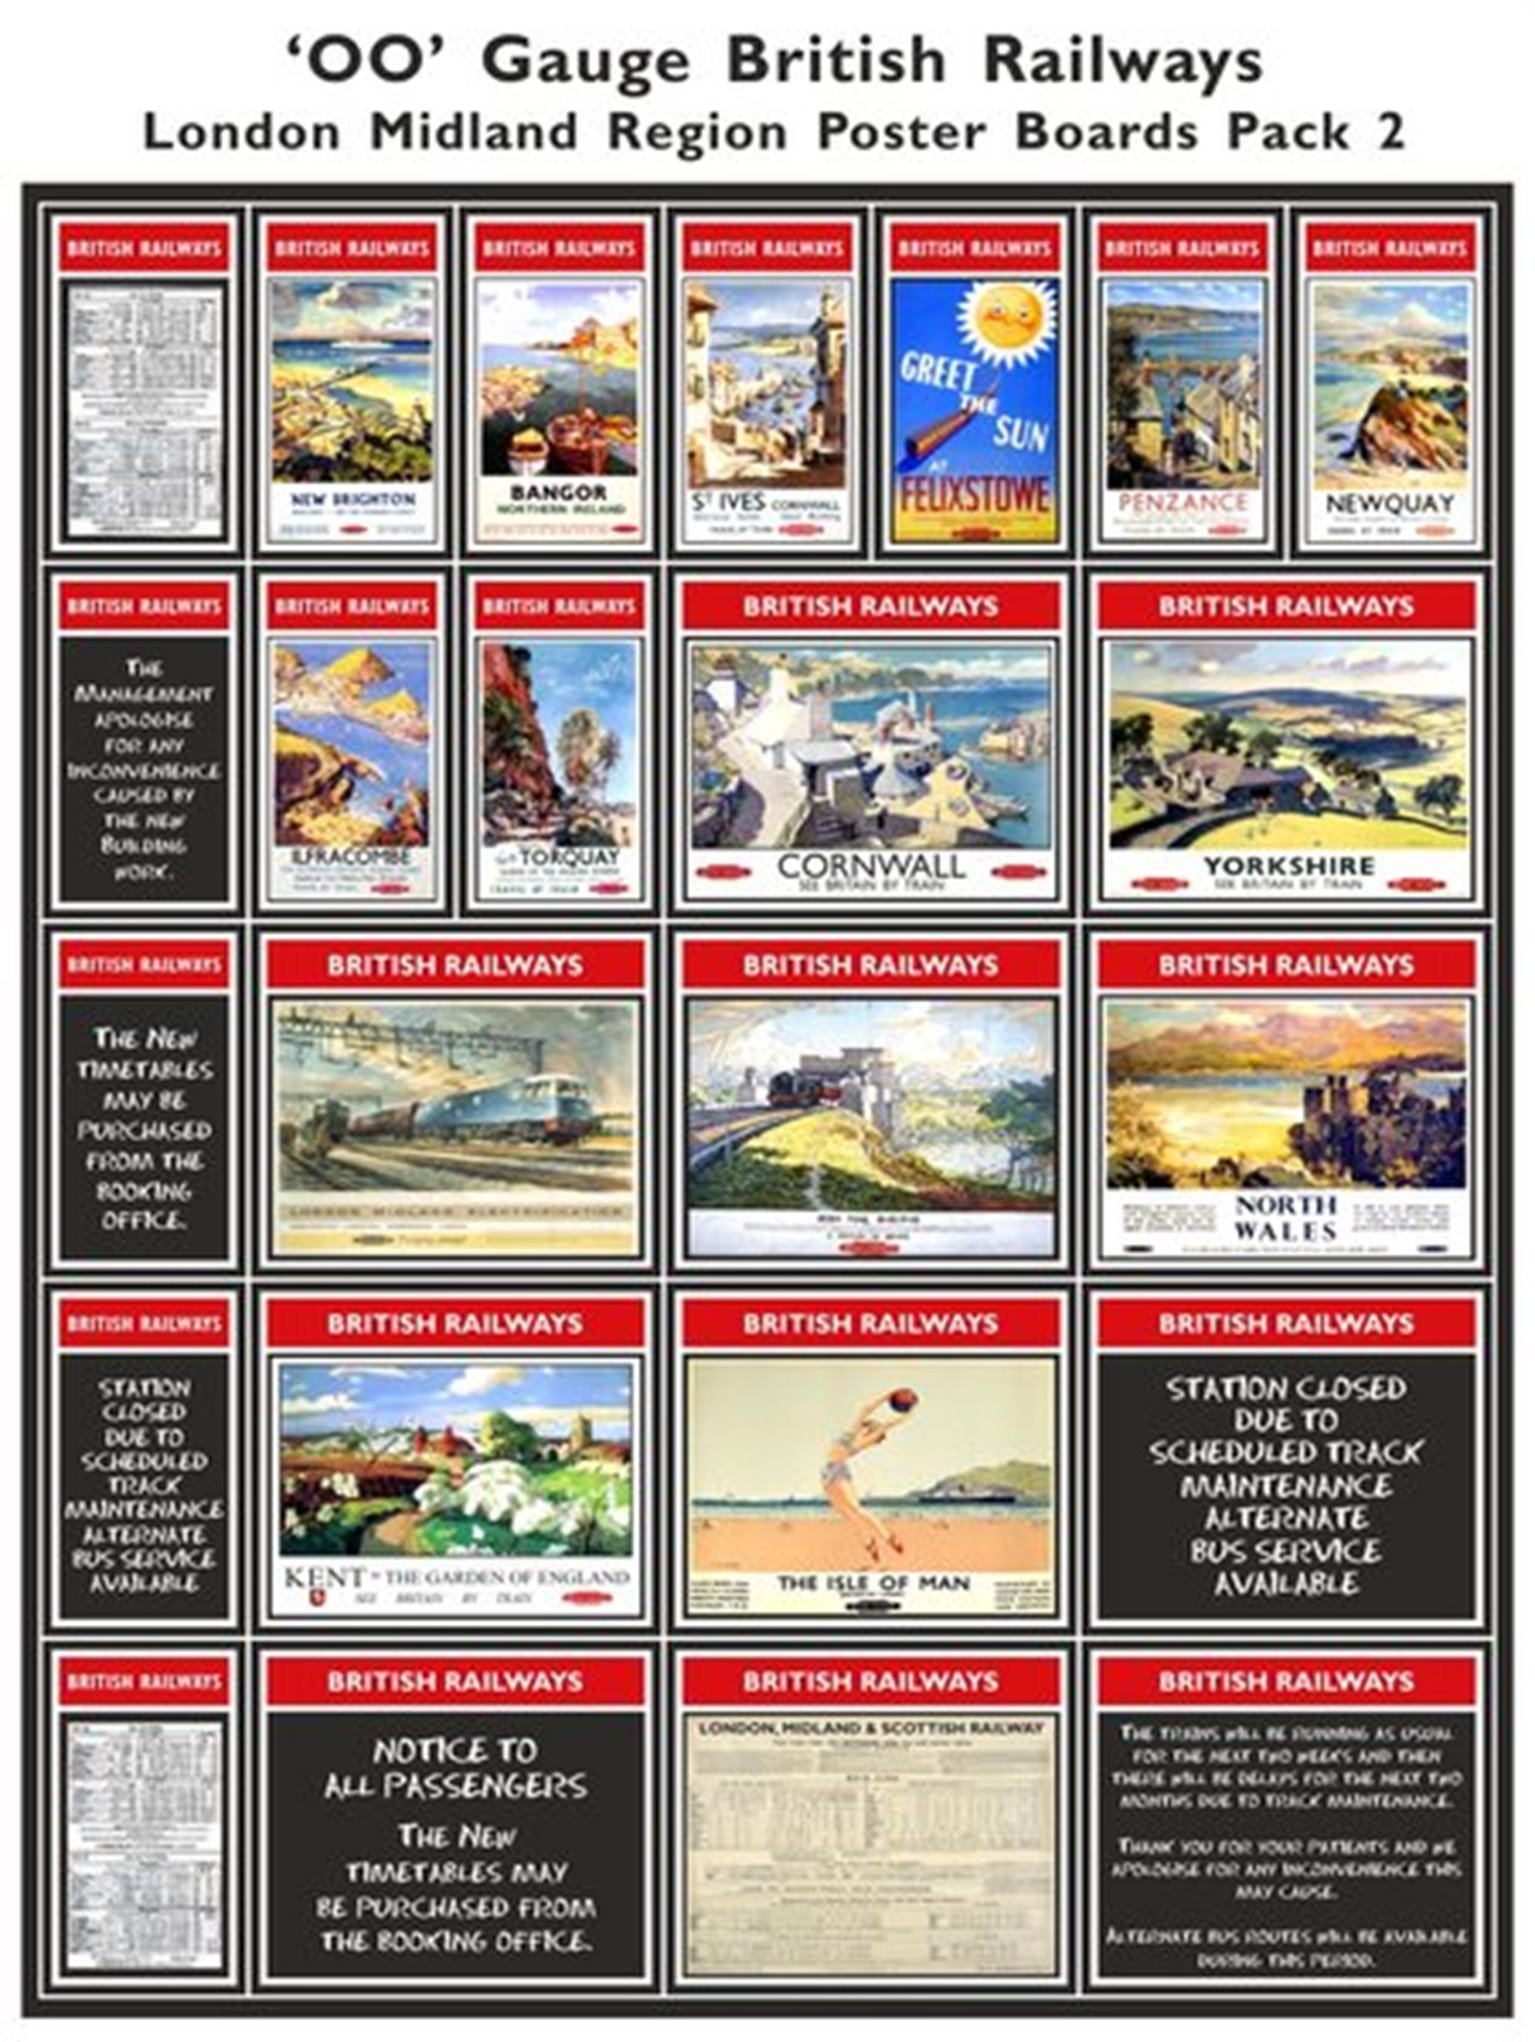 British Railways London Midland Region Poster Boards Pack 2